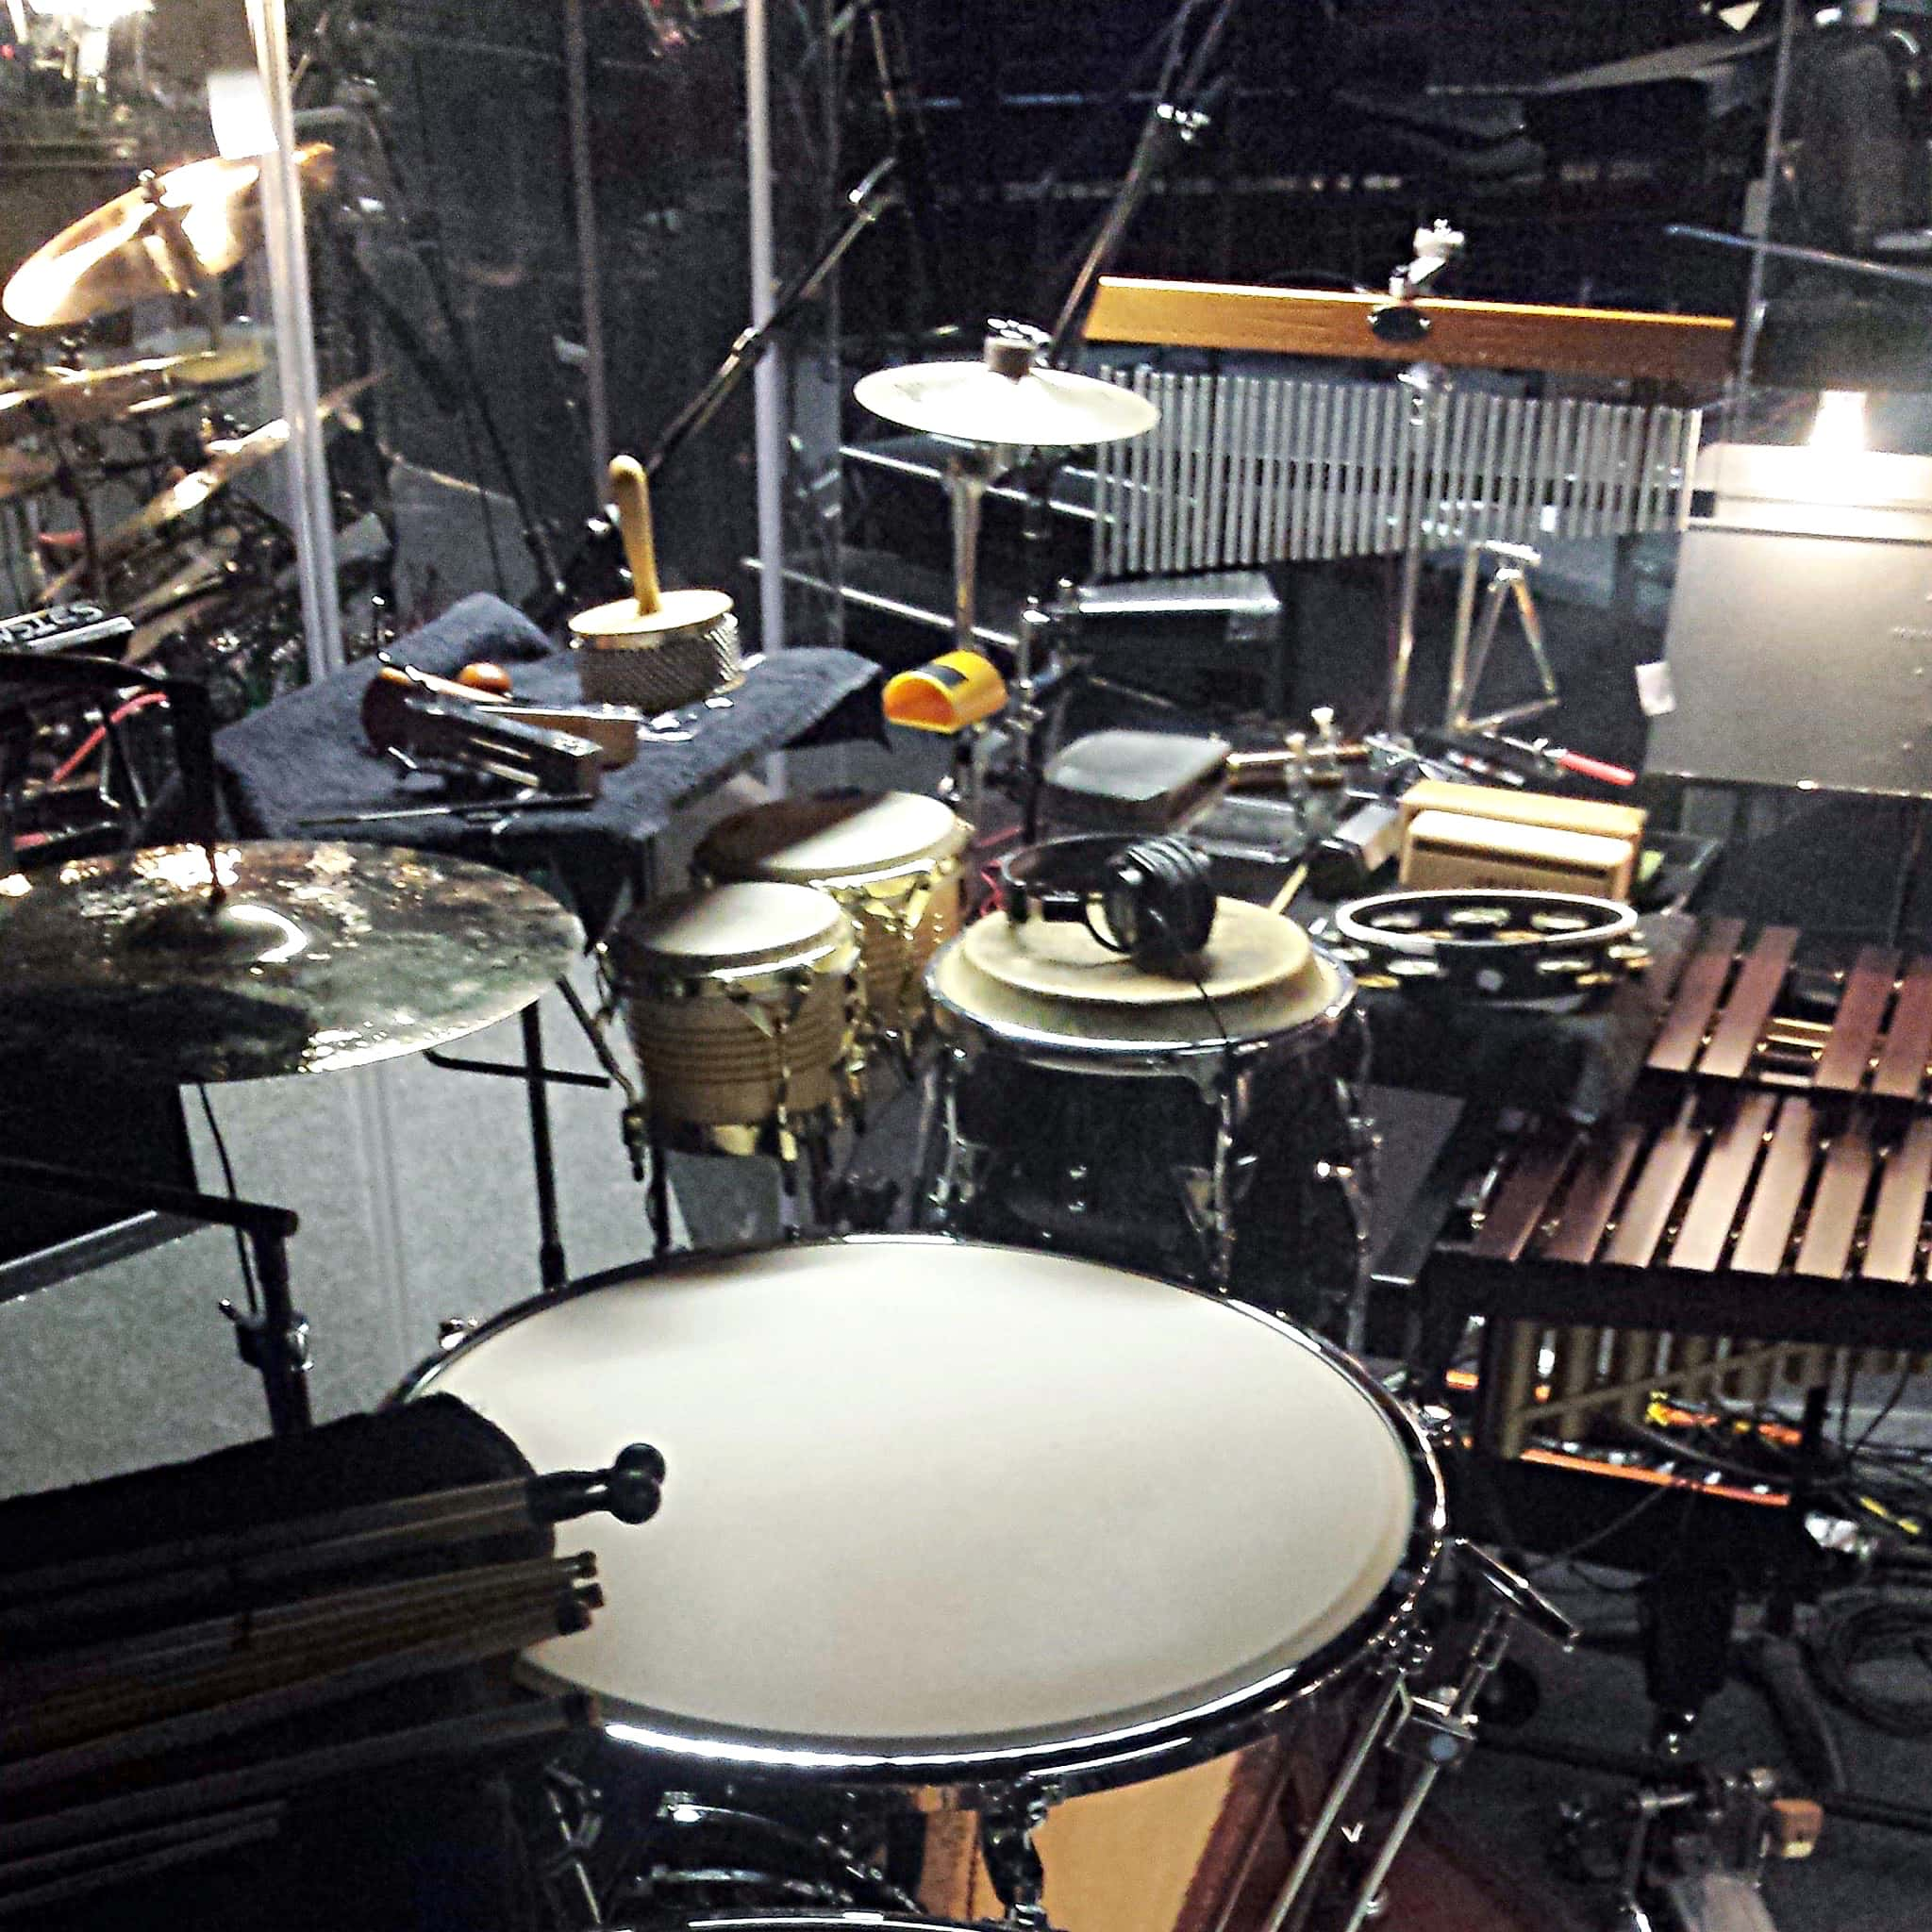 Scott Elford's percussion setup for Newsies at the Fox Cities Performing Arts Center in Appleton, Wisconsin.